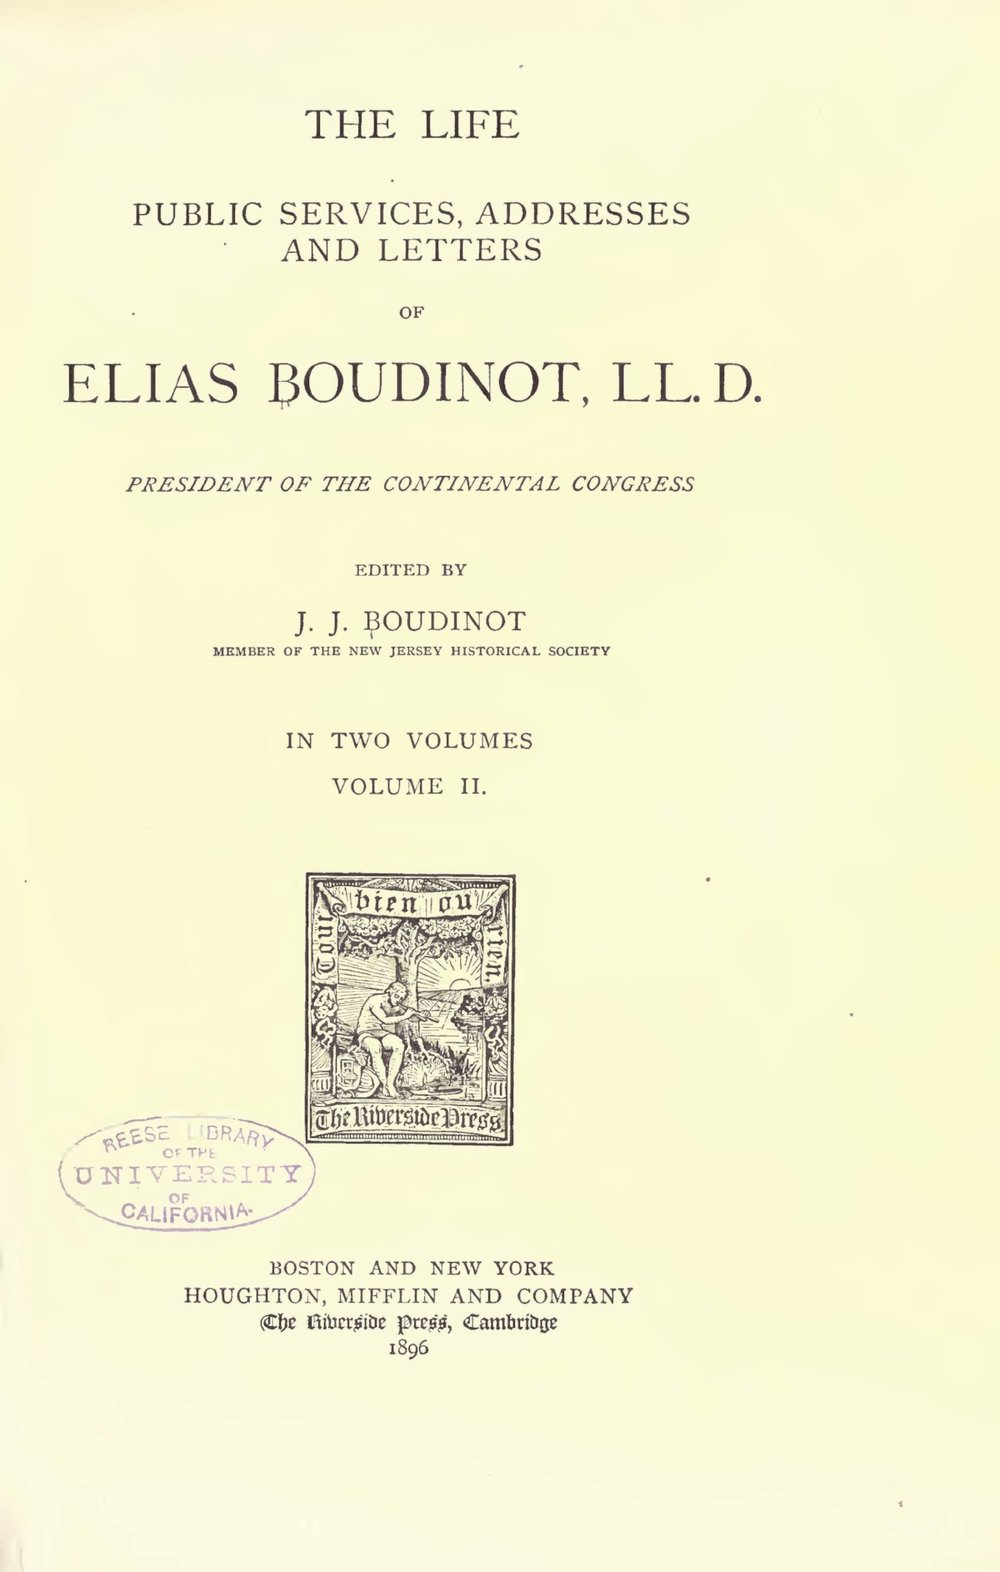 Boudinot, Elias IV, The Life, Public Services, Addresses and Letters of Elias Boudinot Vol. 2 Title Page.jpg